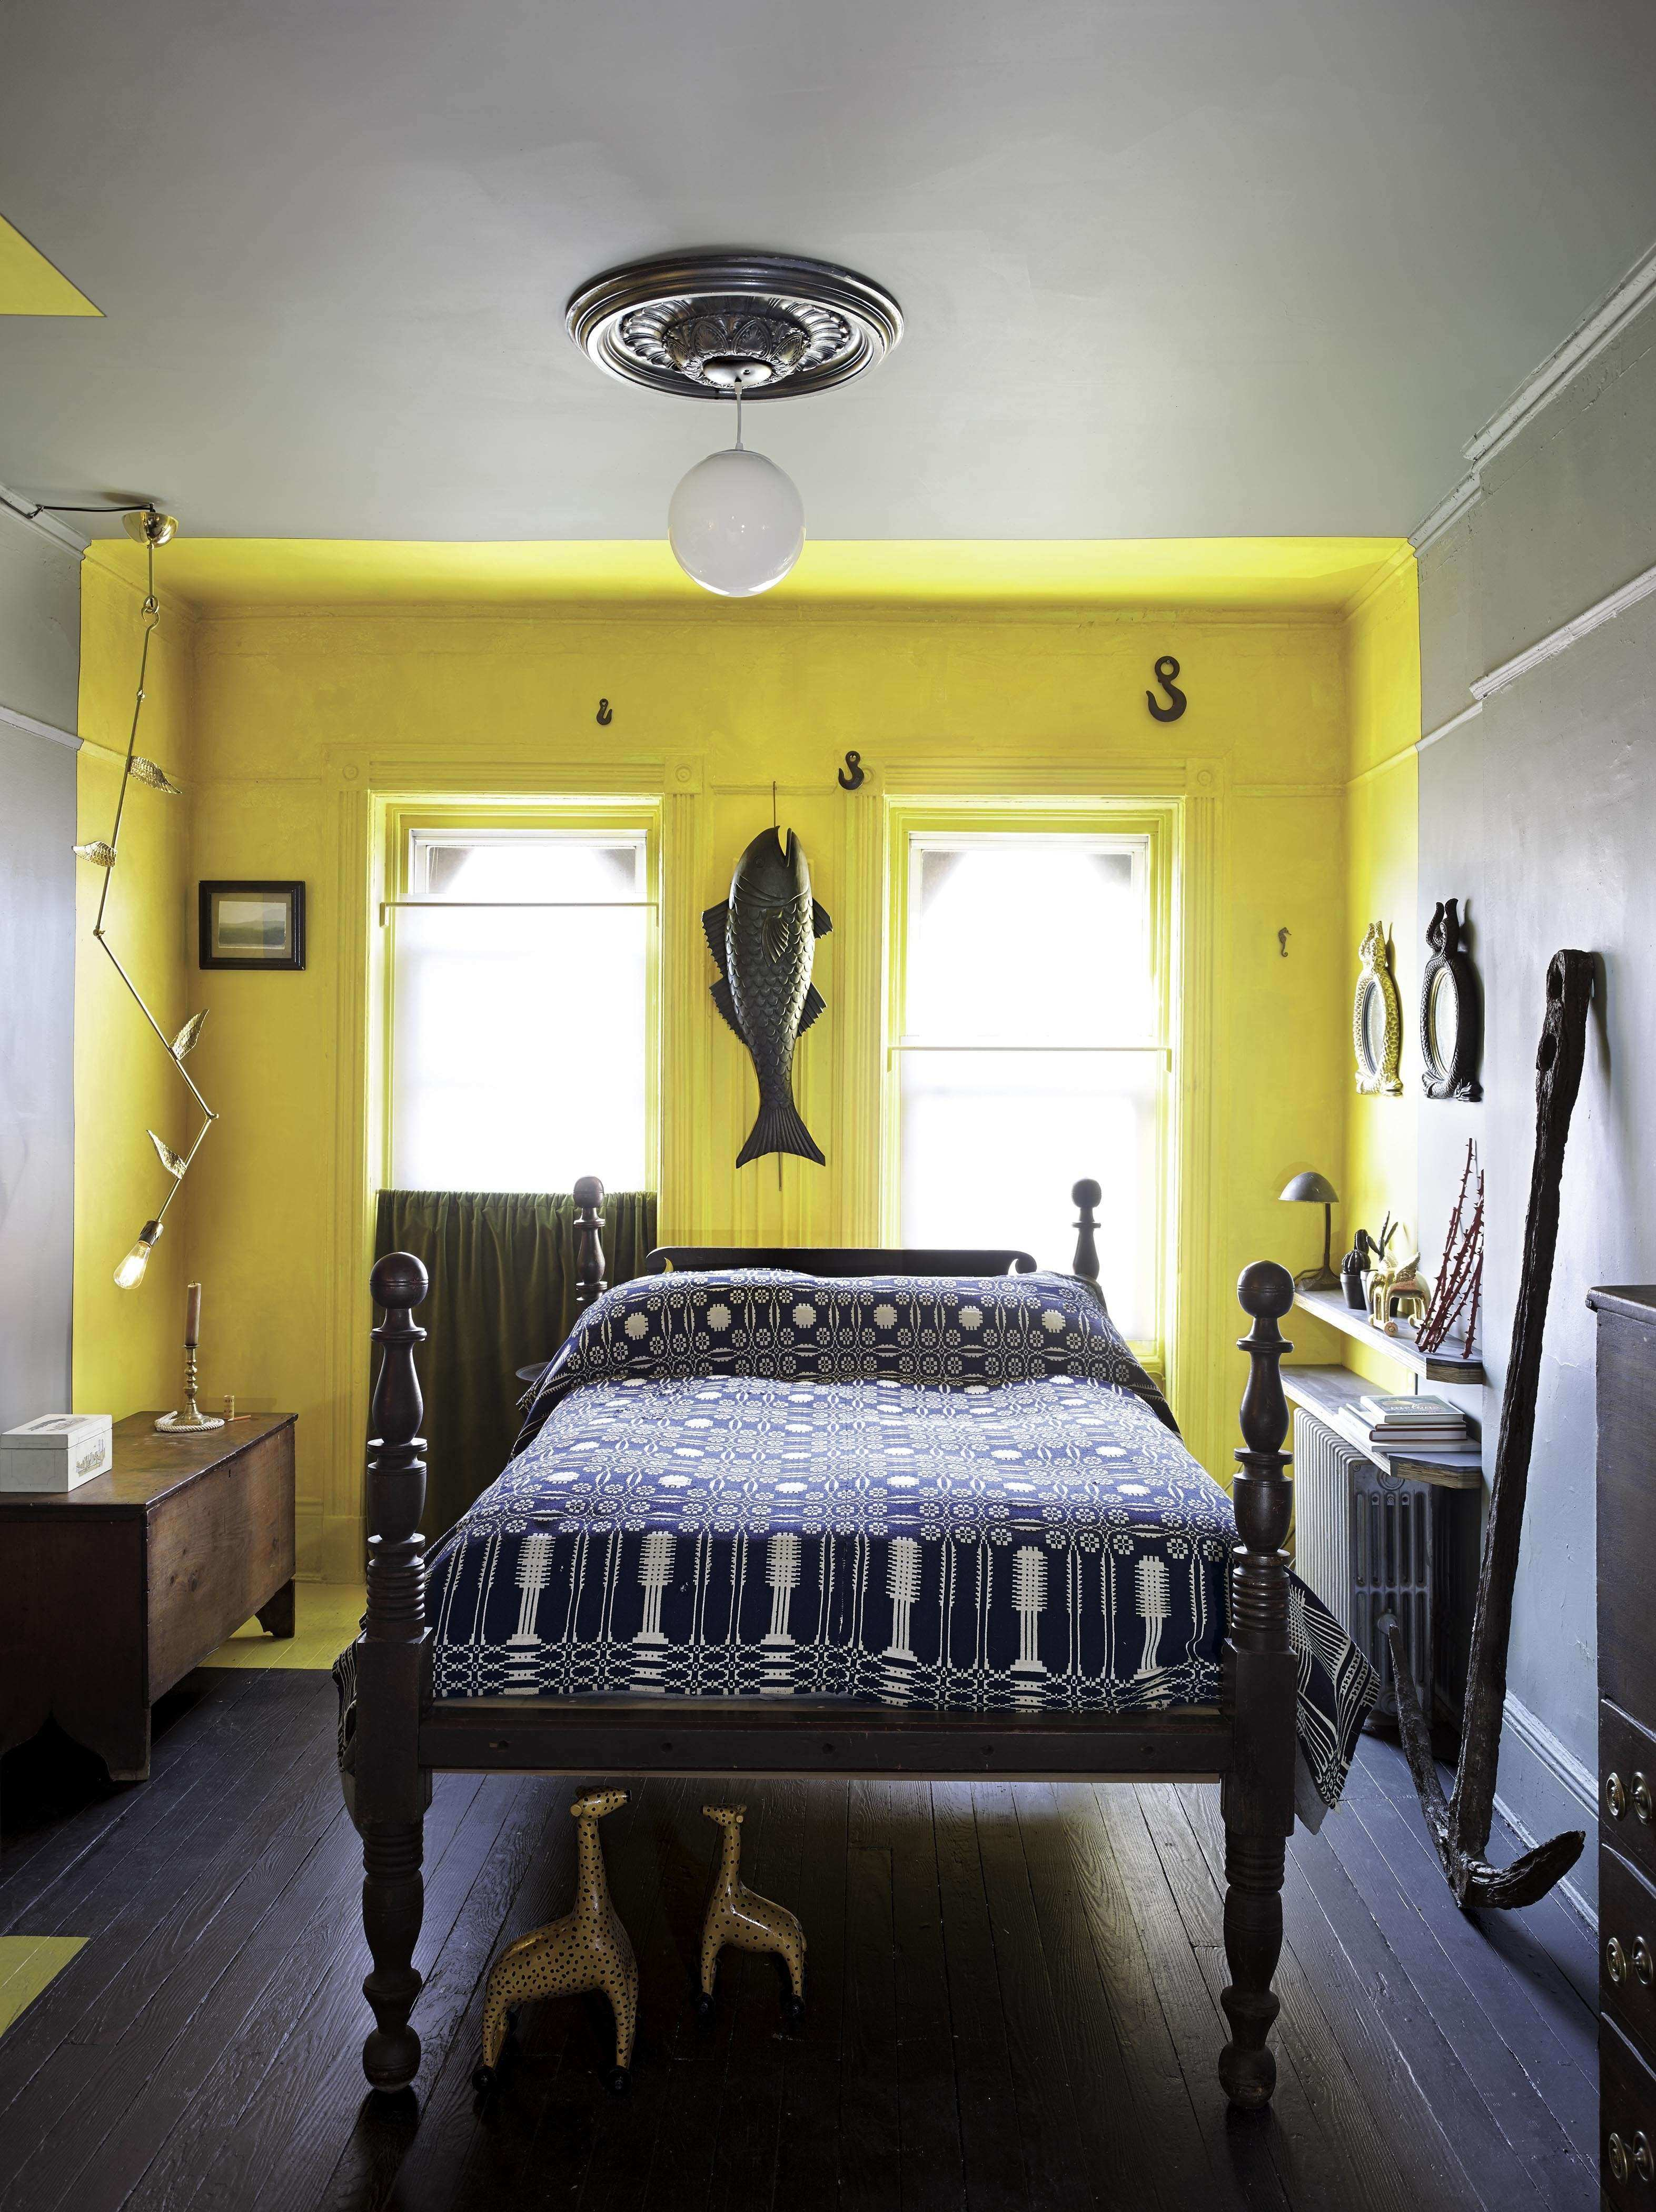 Childrens Bedroom Furniture Awesome Grey and Yellow Bedroom Ideas Unique Decorating Ideas for A Yellow